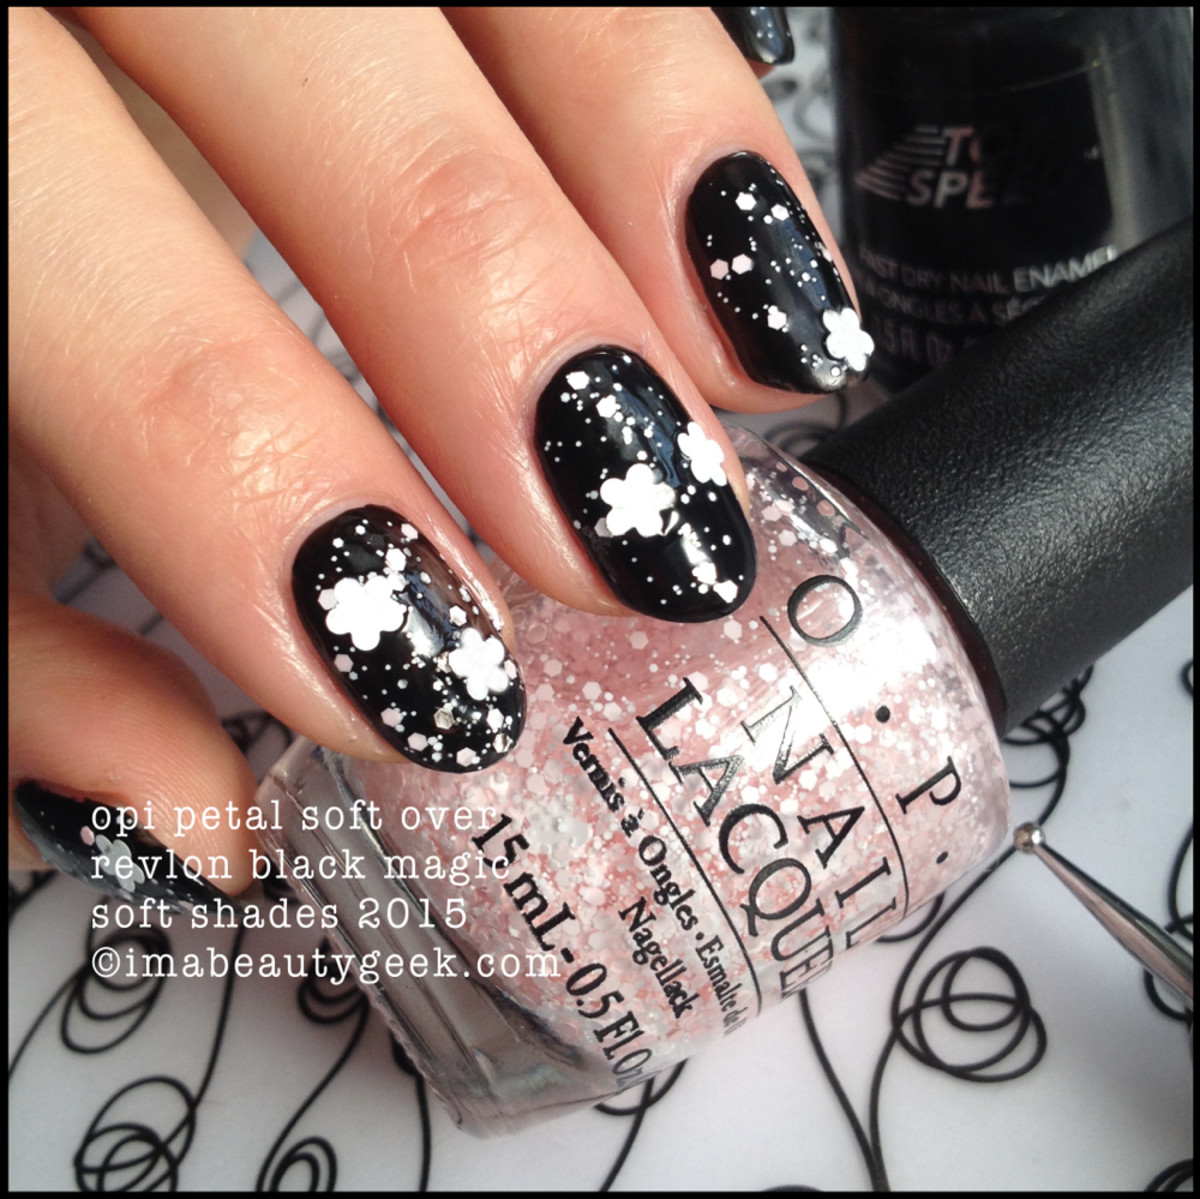 OPI Soft Shades 2015 Petal Soft over Revlon Black Magic